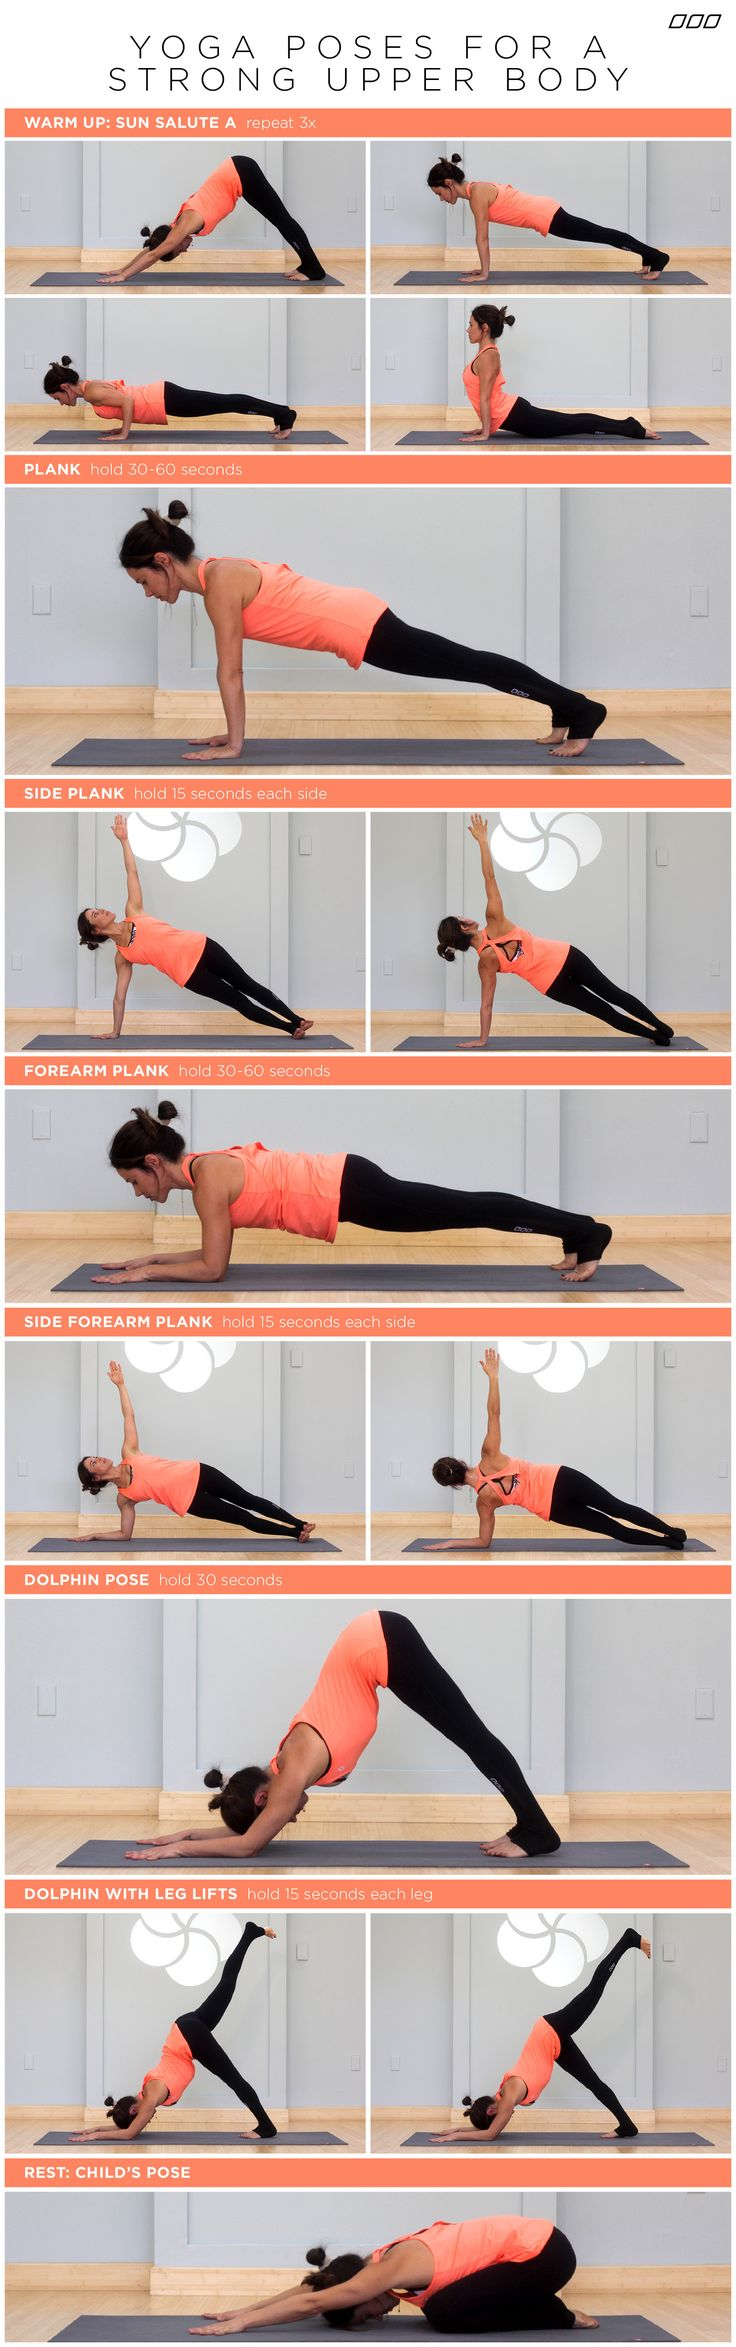 Nice core sequence for yoga warm-up. Planks, forearm planks, and dolphin pose. yoga-poses-for-a-strong-upper-body